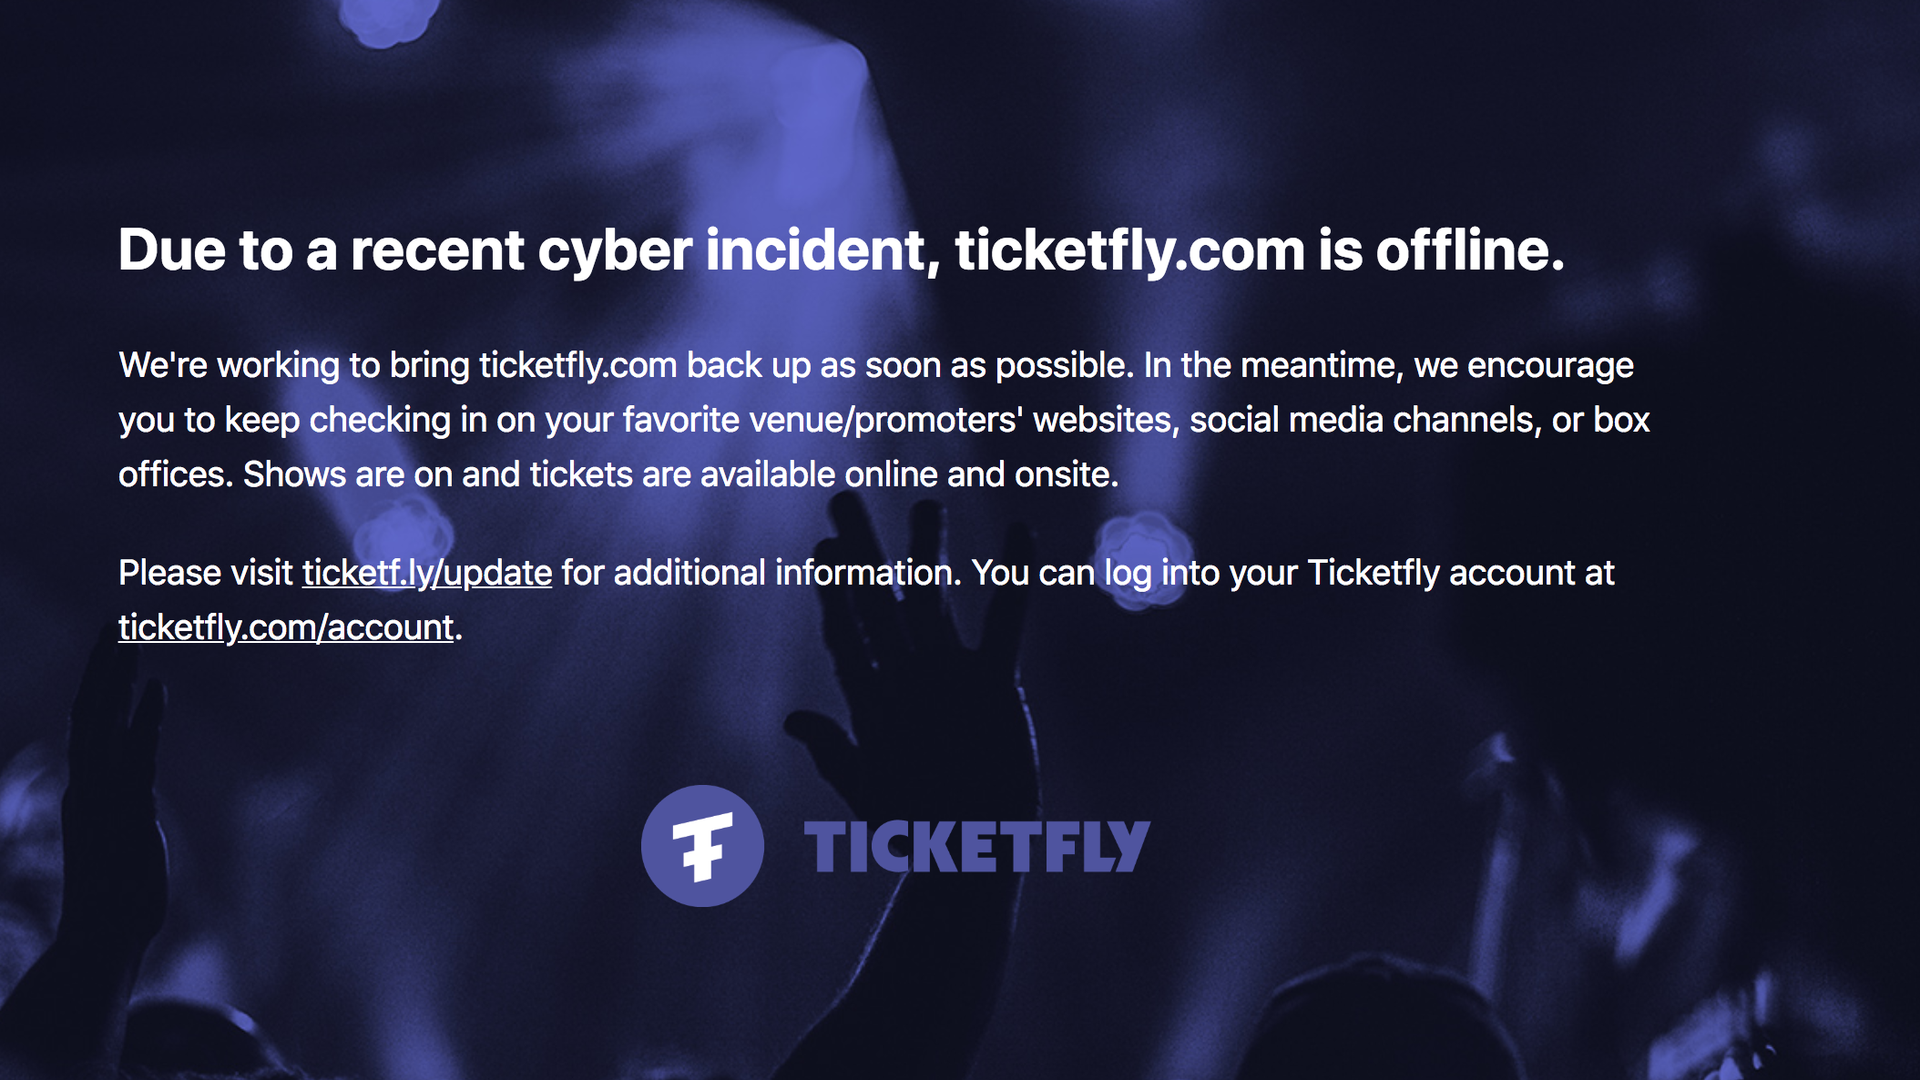 Home page for ticketfly.com reporting the site is down.